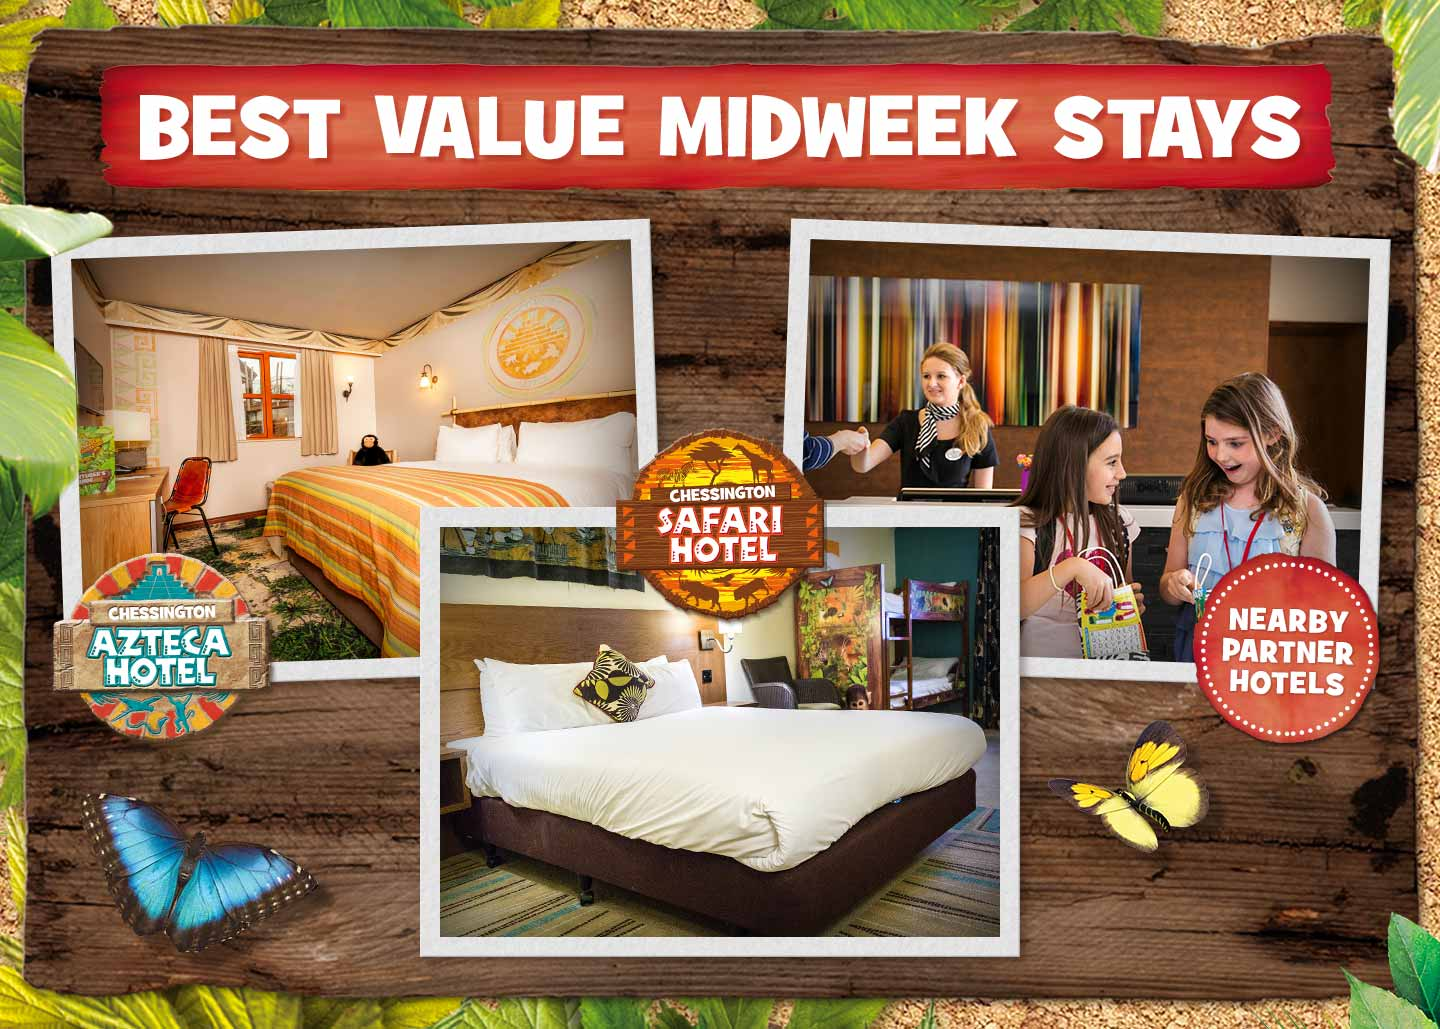 Best Value Midweek Stays at Chessington Resort in 2018